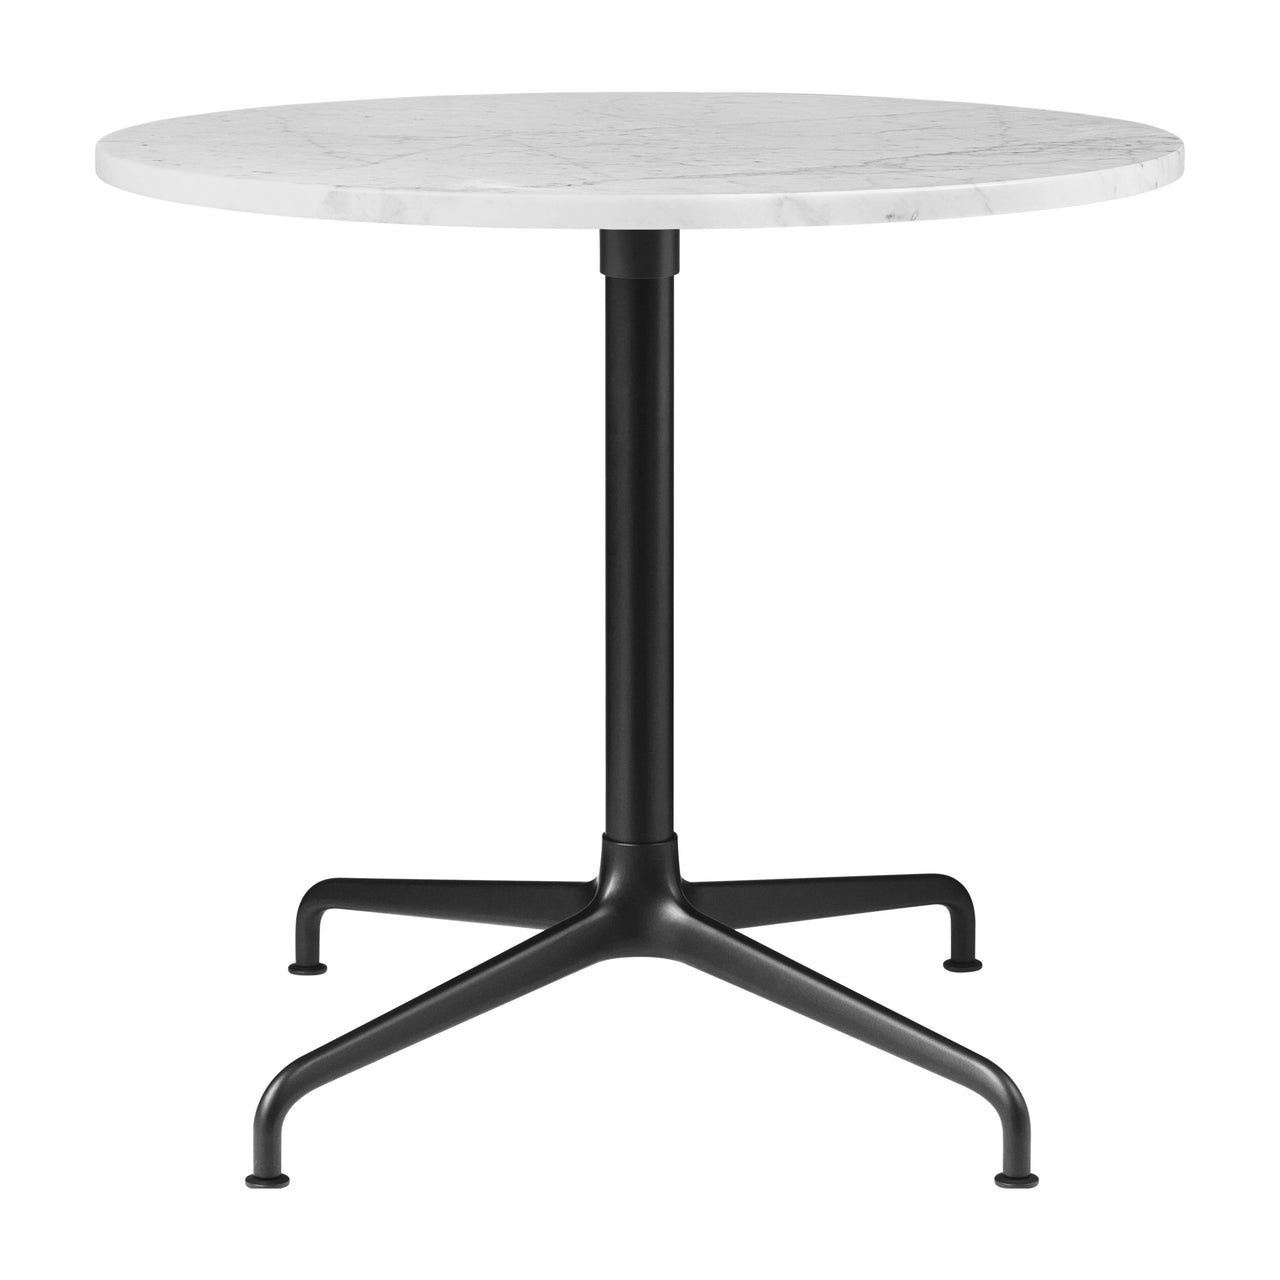 Beetle Lounge Table: Round + Small + White Carrara Marble + Black Matte Base